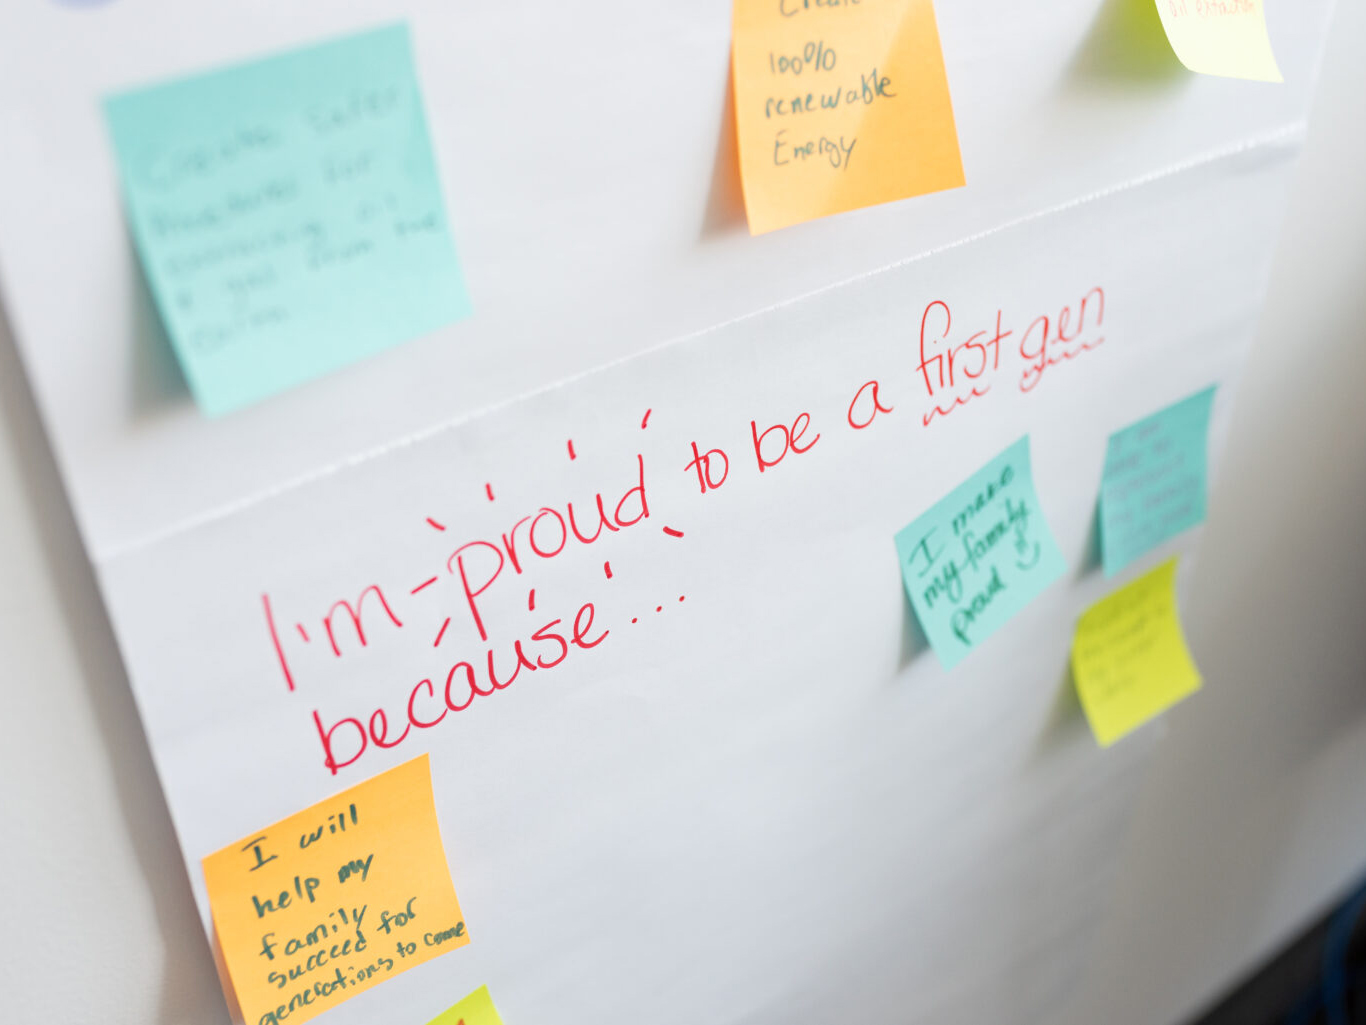 hand-written messages on post-its and white board